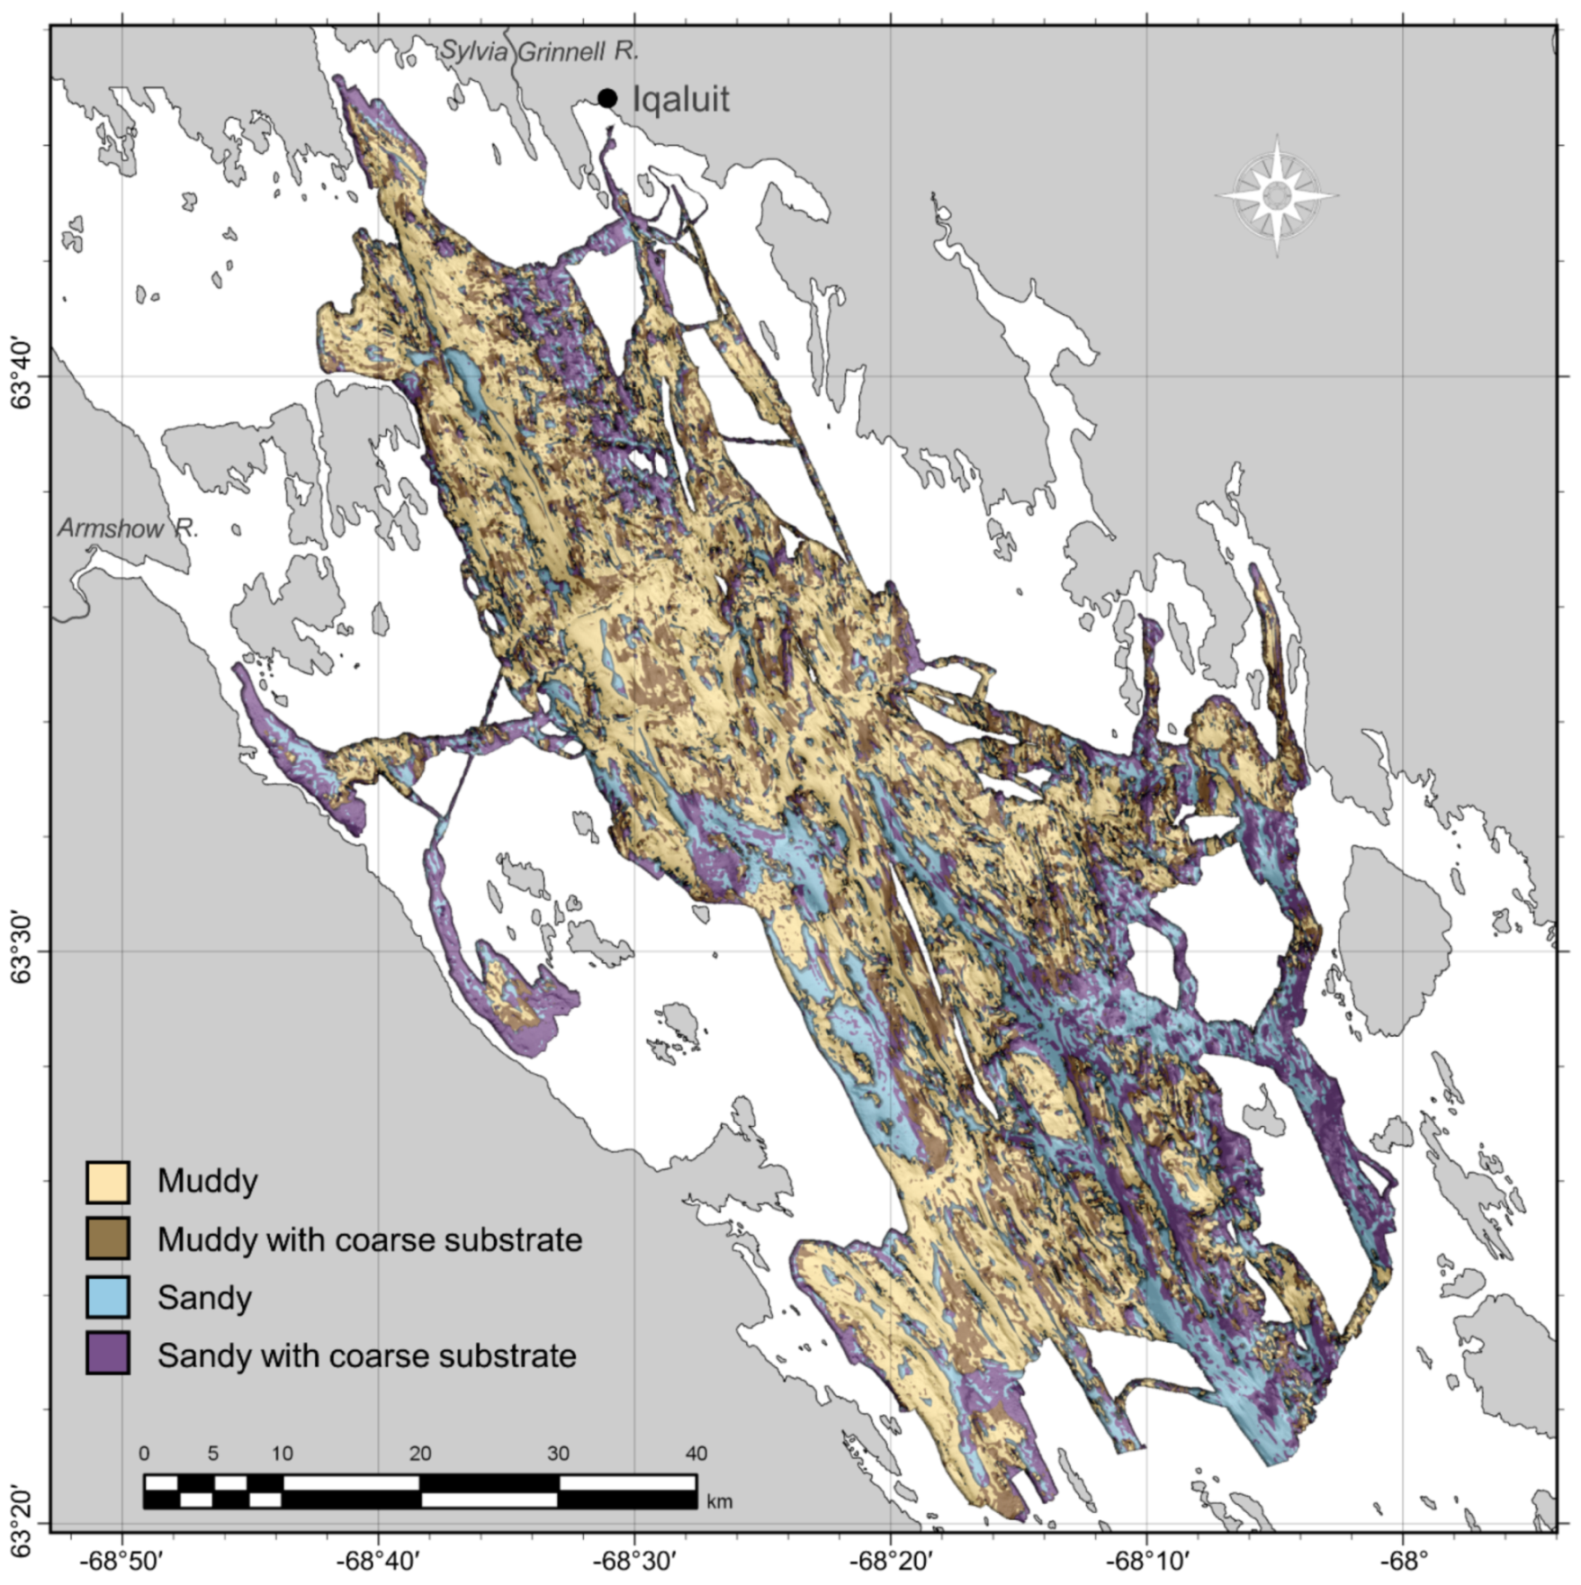 Geosciences | Free Full-Text | A Spatially Explicit Comparison of